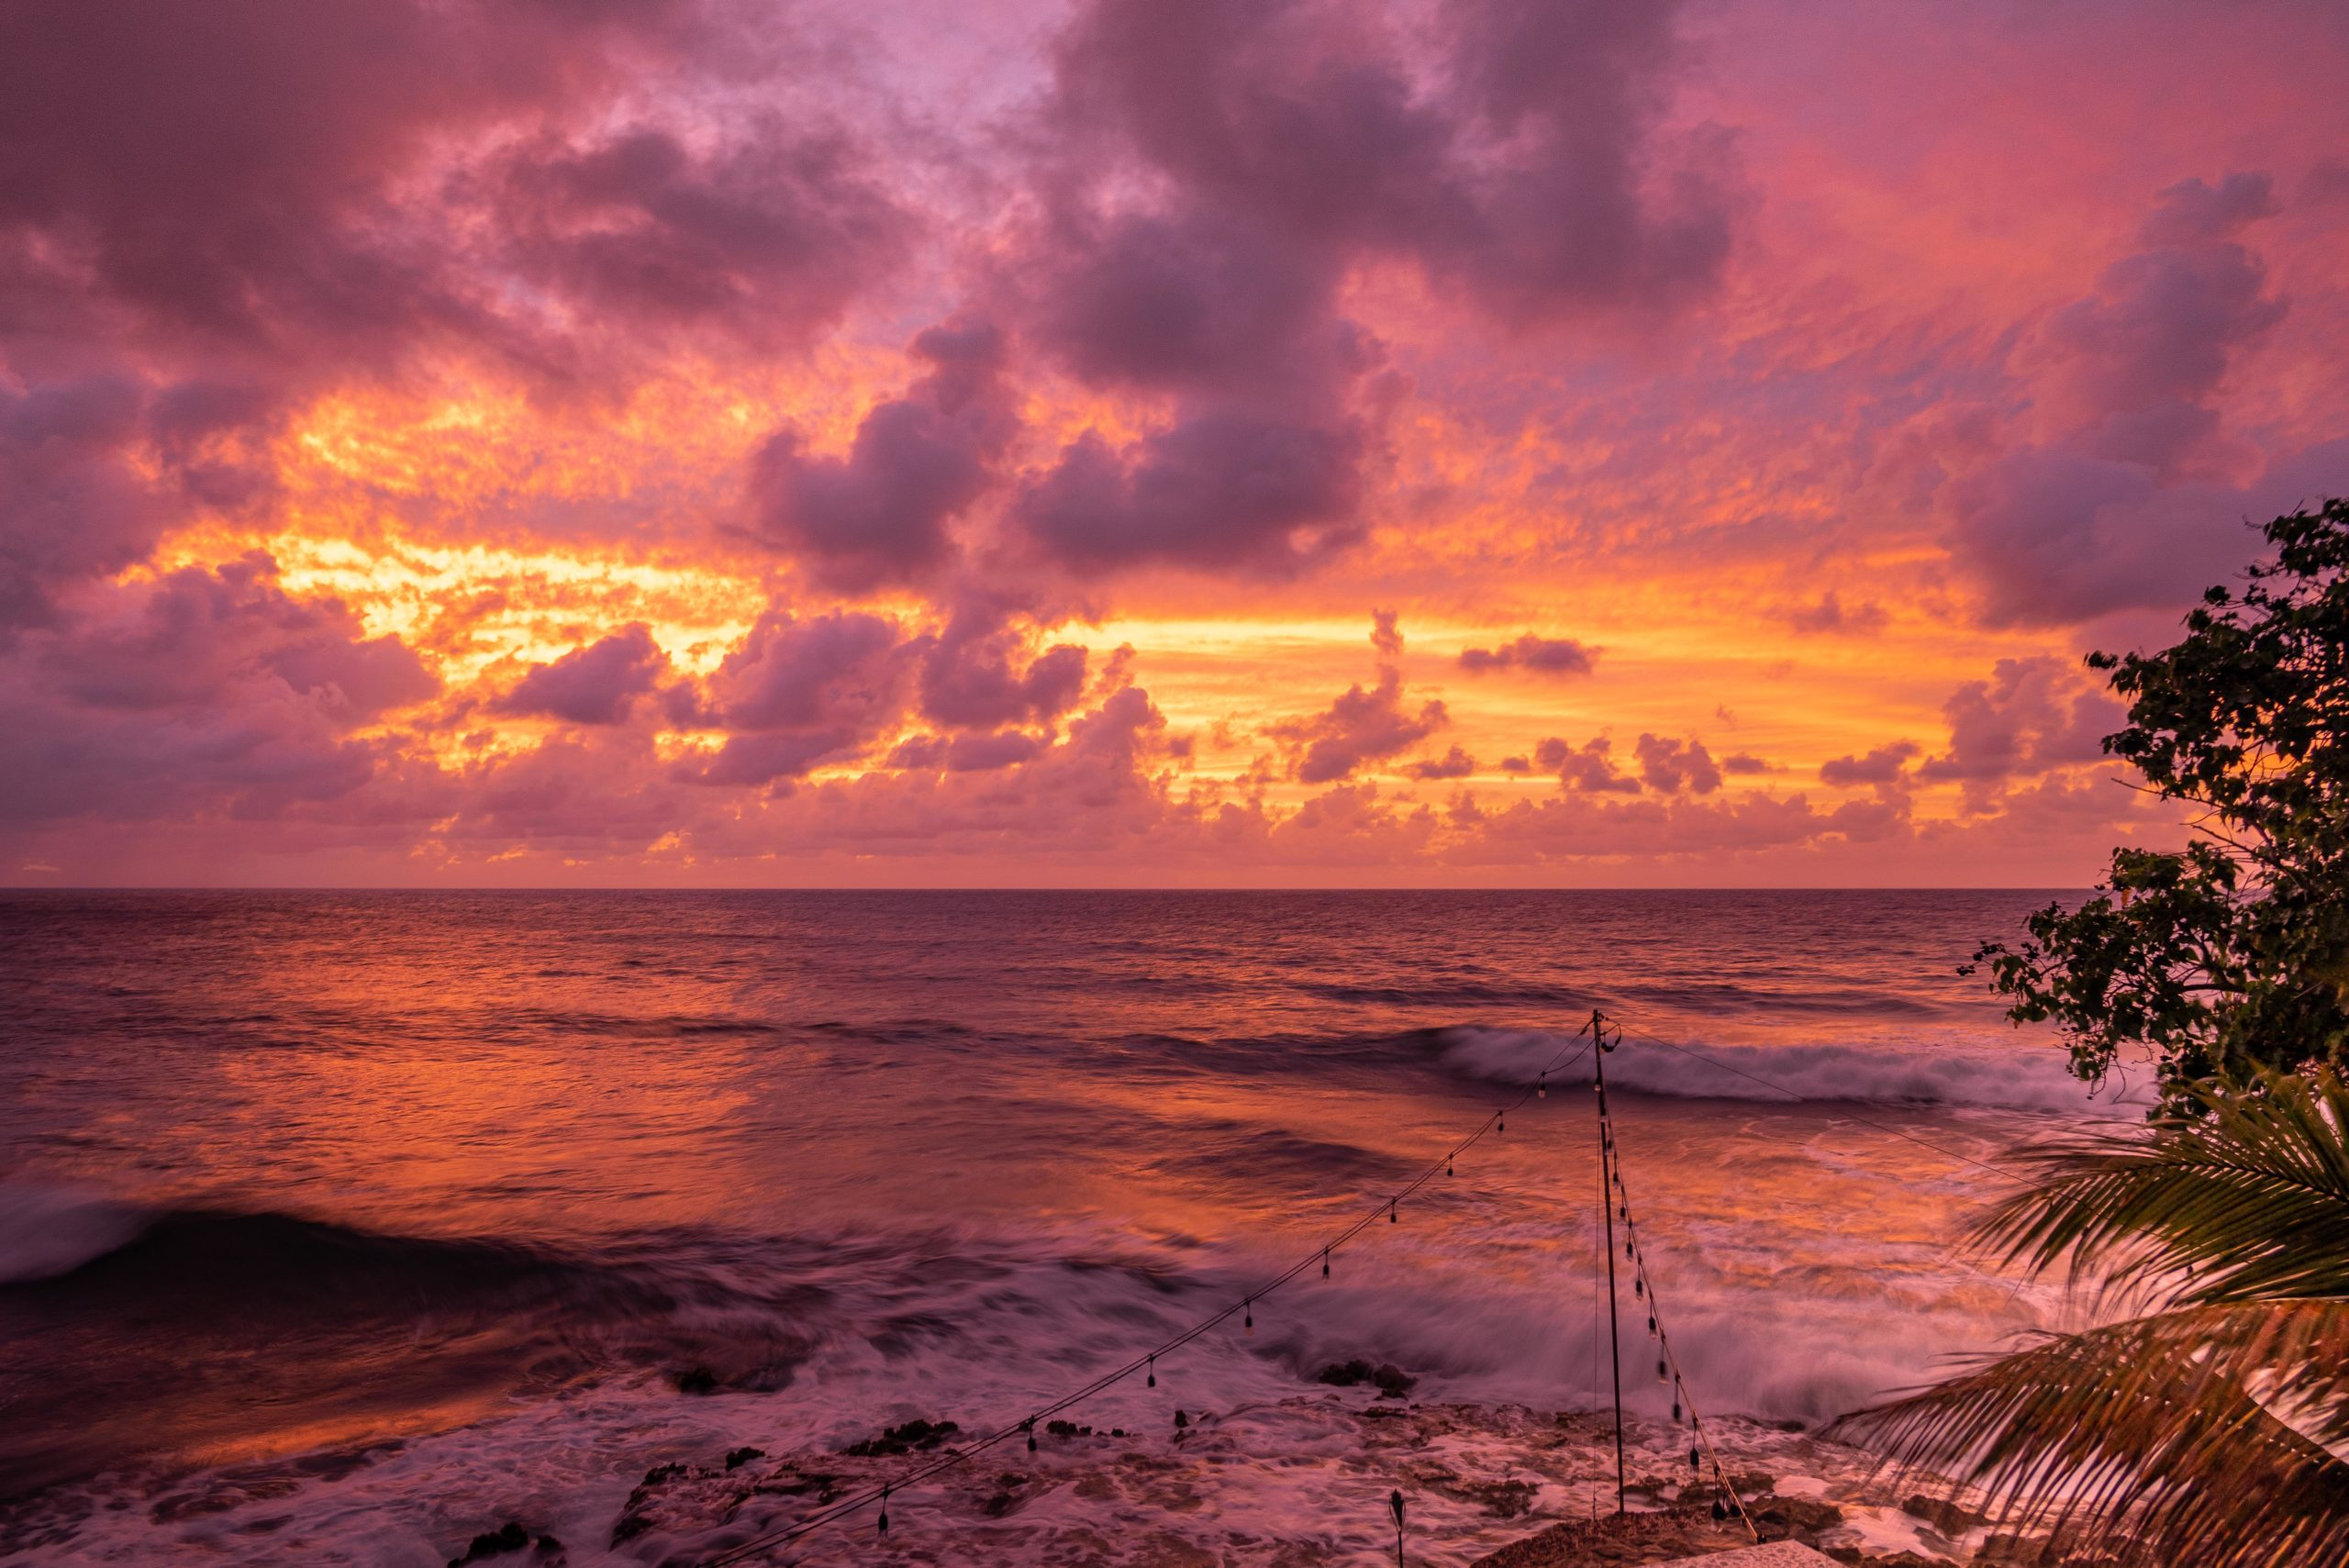 After The Sunset at The Waves at Cane Bay, St. Croix